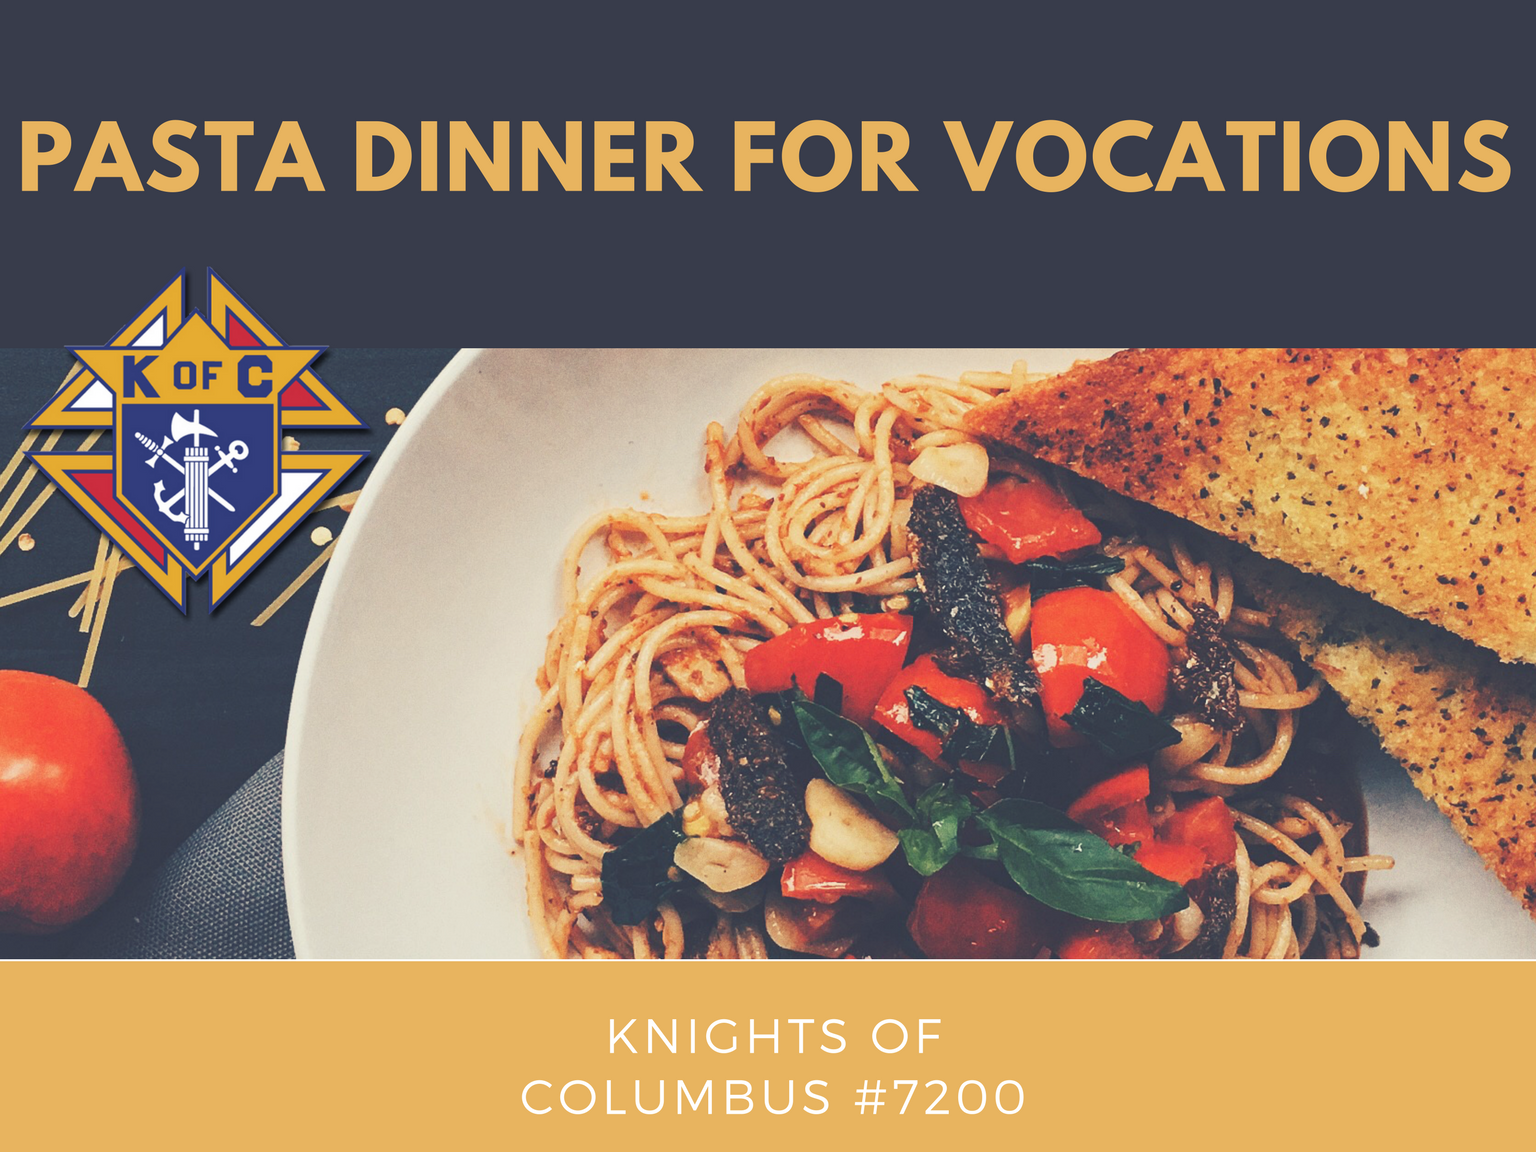 Pasta Dinner for Vocations